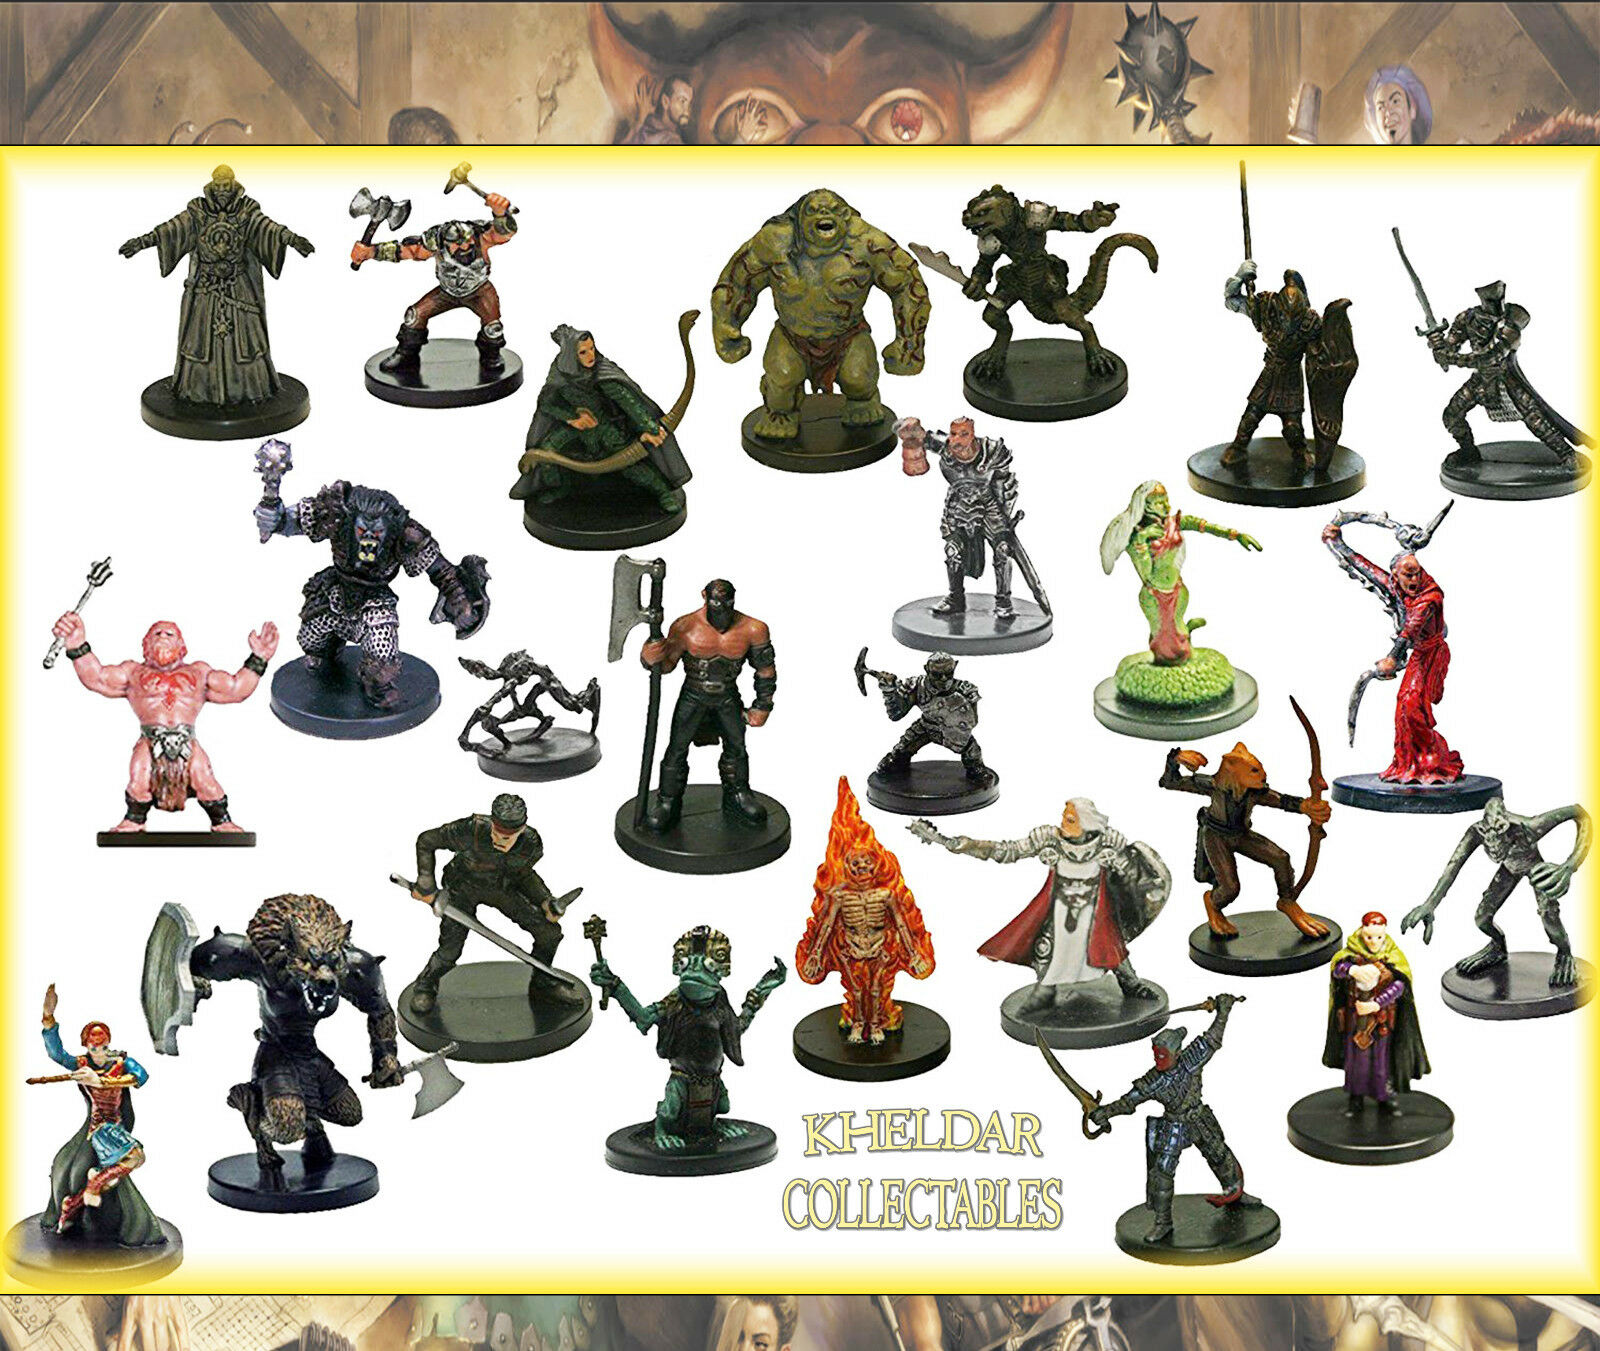 25 imballare lotto - Dungeons &Dragons   Pathfinder Miniatures, D&D cifra, RPG minis